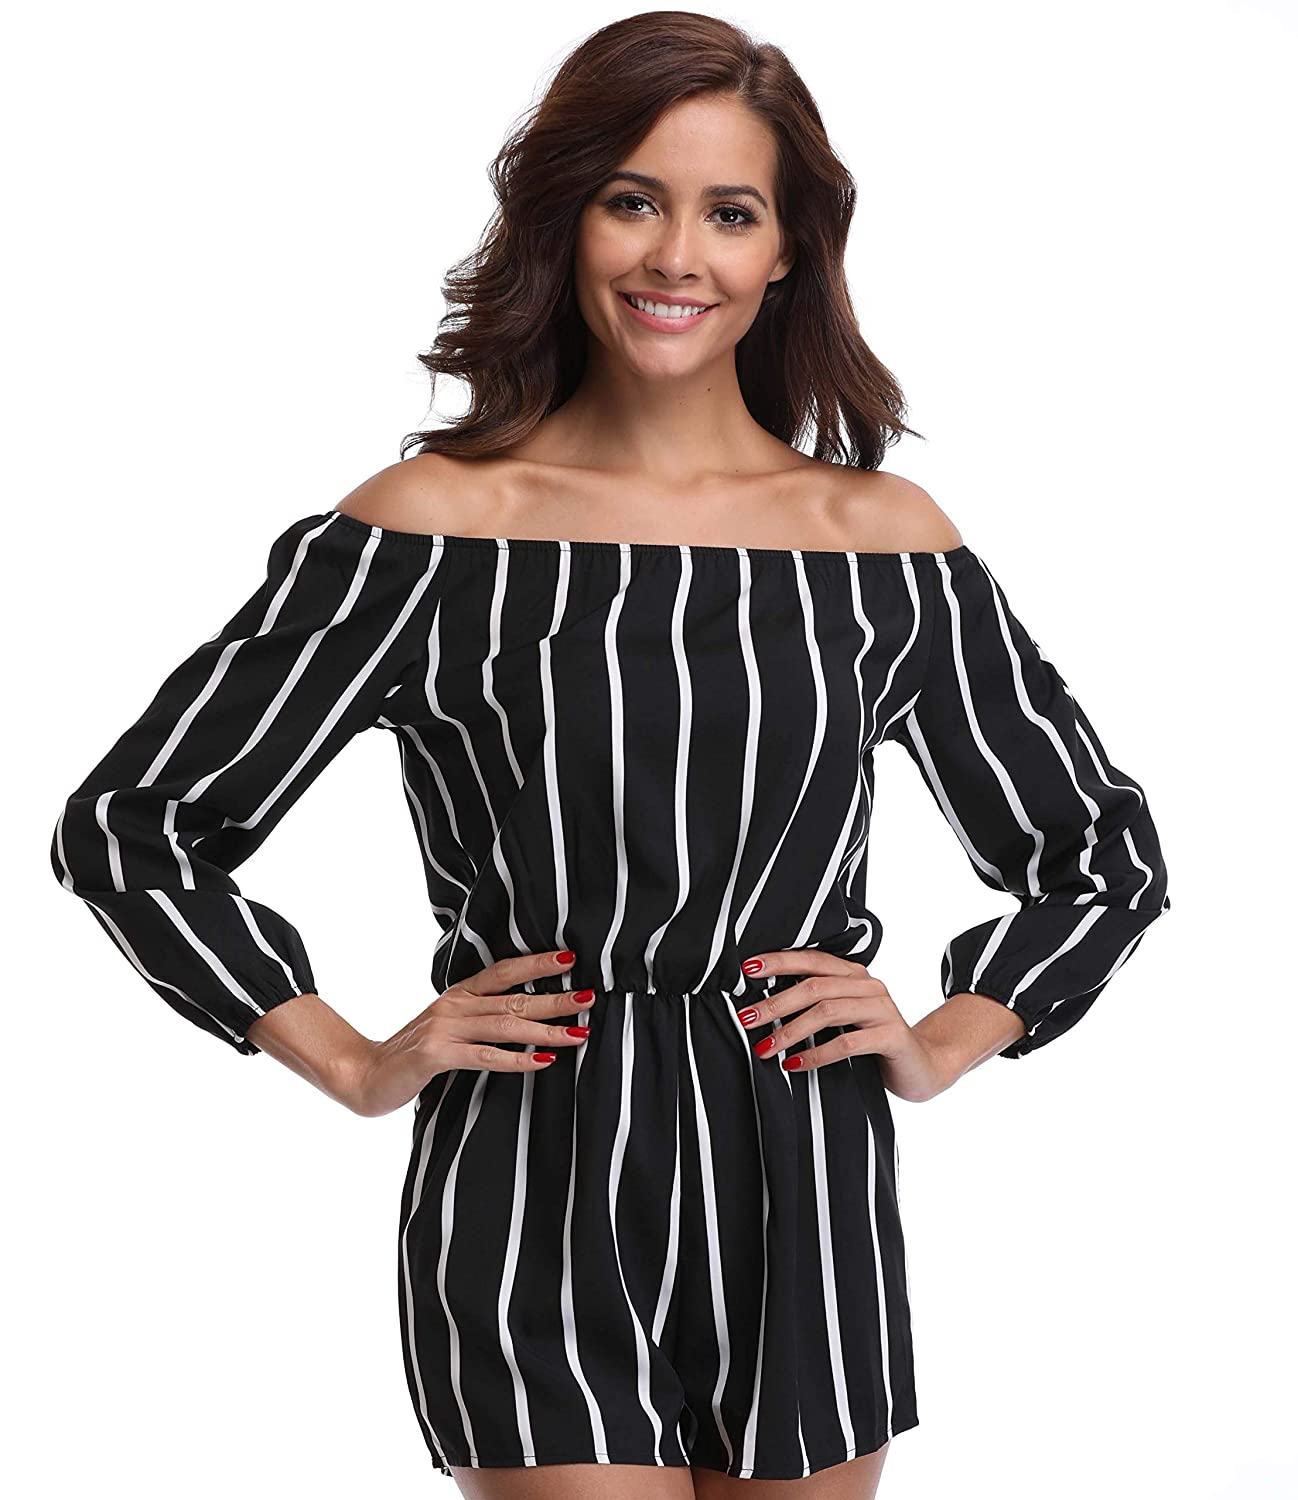 6e9e7685e34f Amazon.com  MISS MOLY Women Playsuit Short Romper Jumpsuit Off The Shoulder  for Lady Summer Rompers Playsuits 3 4 Sleeves  Clothing